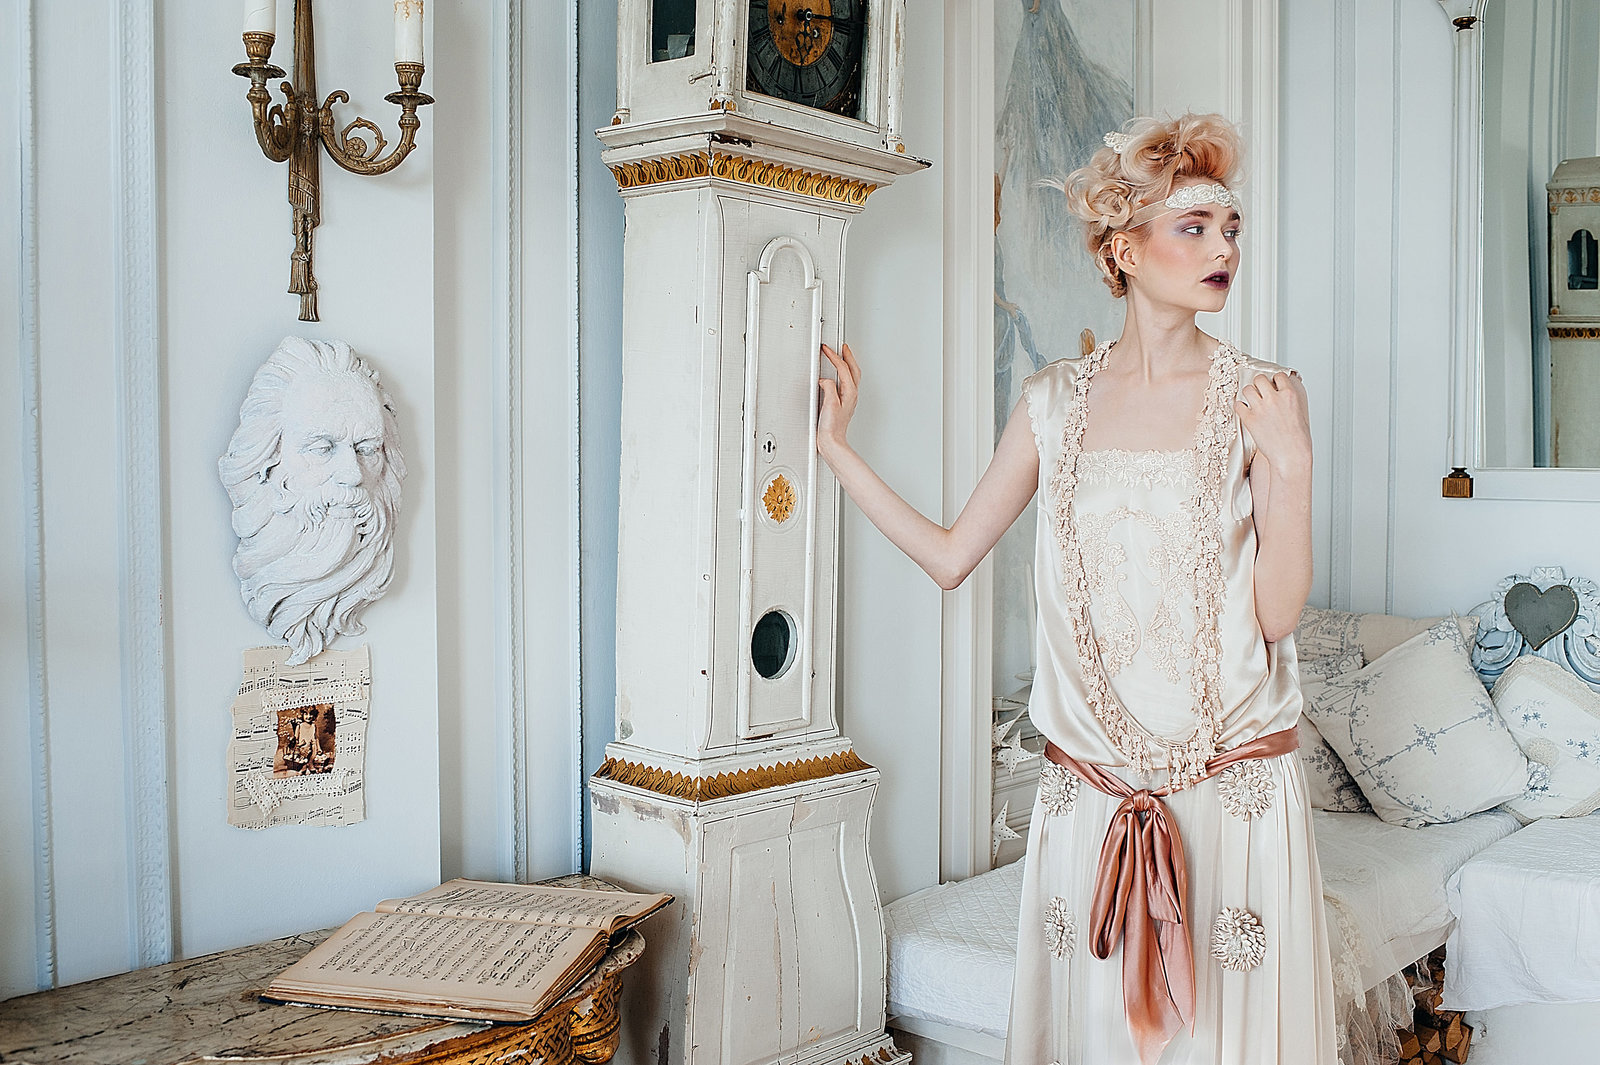 Marthe_1920s_style_flapper_wedding_dress_JoanneFlemingDesign (1)